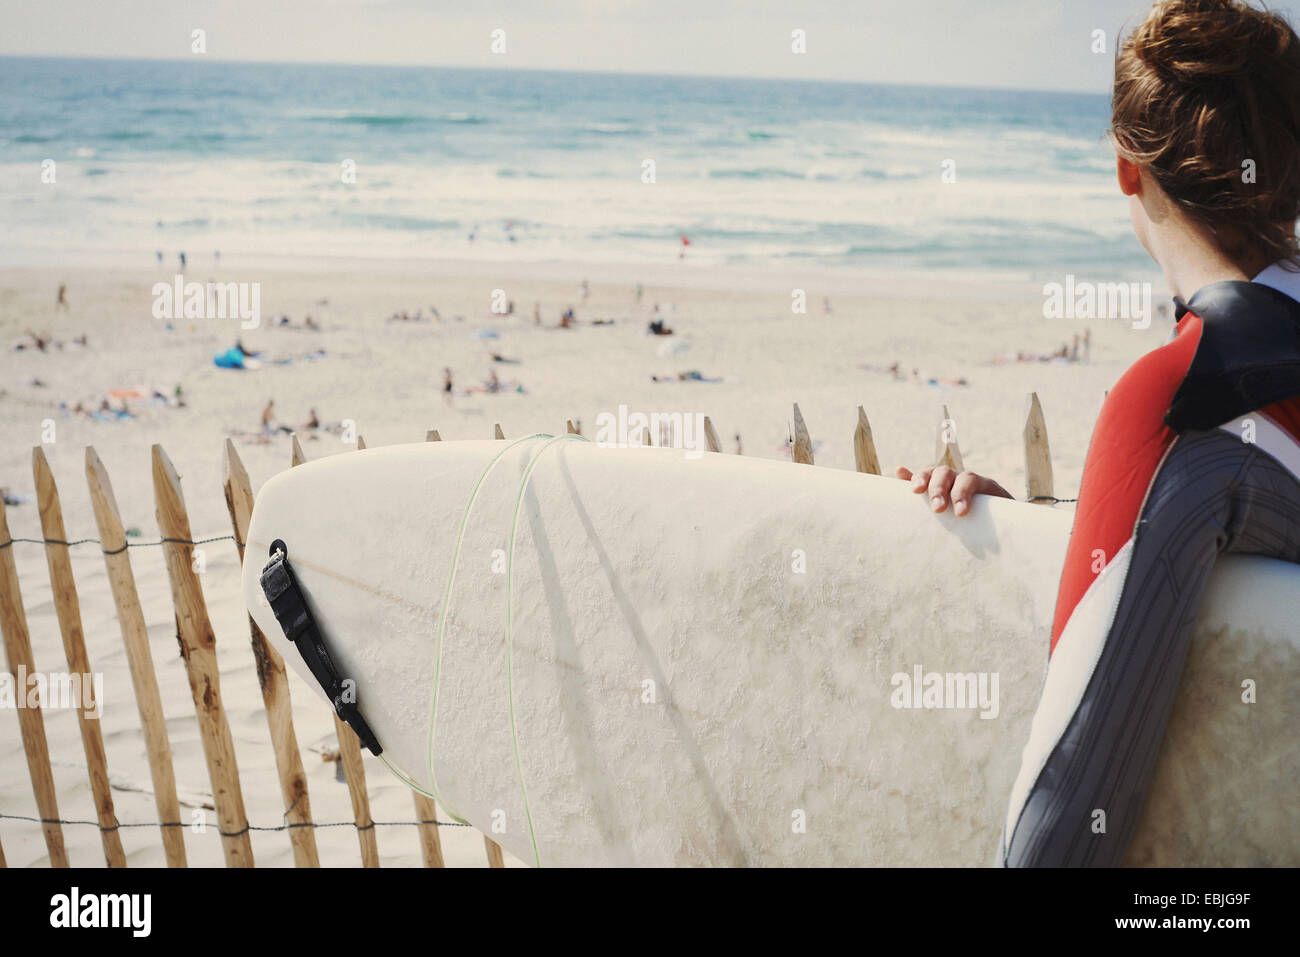 Surfer avec surfboard on beach, Lacanau, France Photo Stock